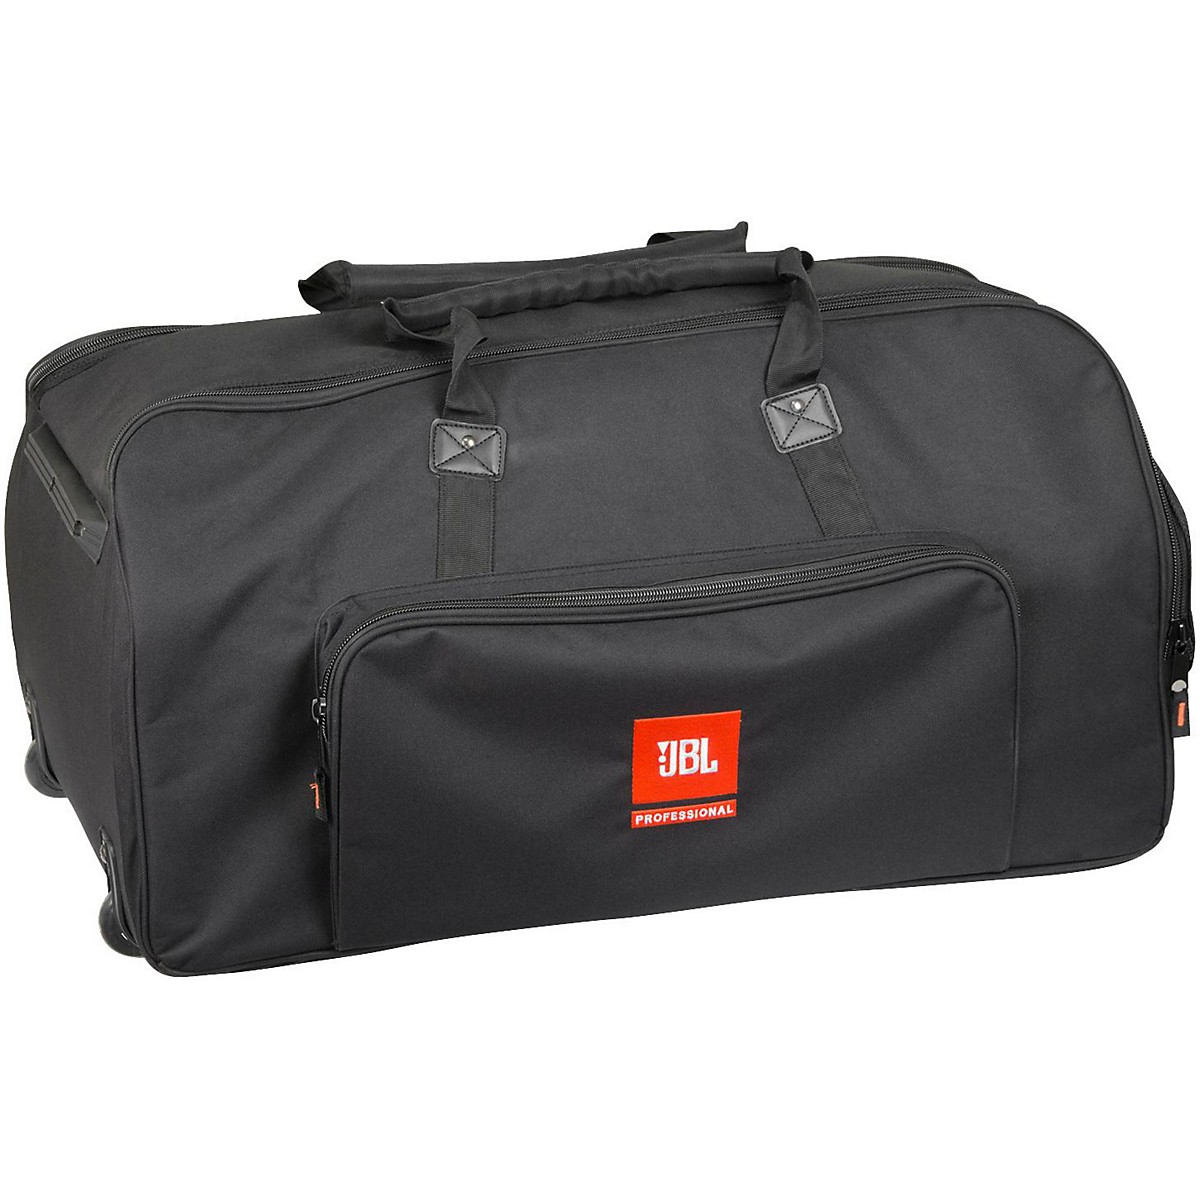 JBL Bag EON615 Deluxe Roller Bag w/ Wheels & Tow Handle